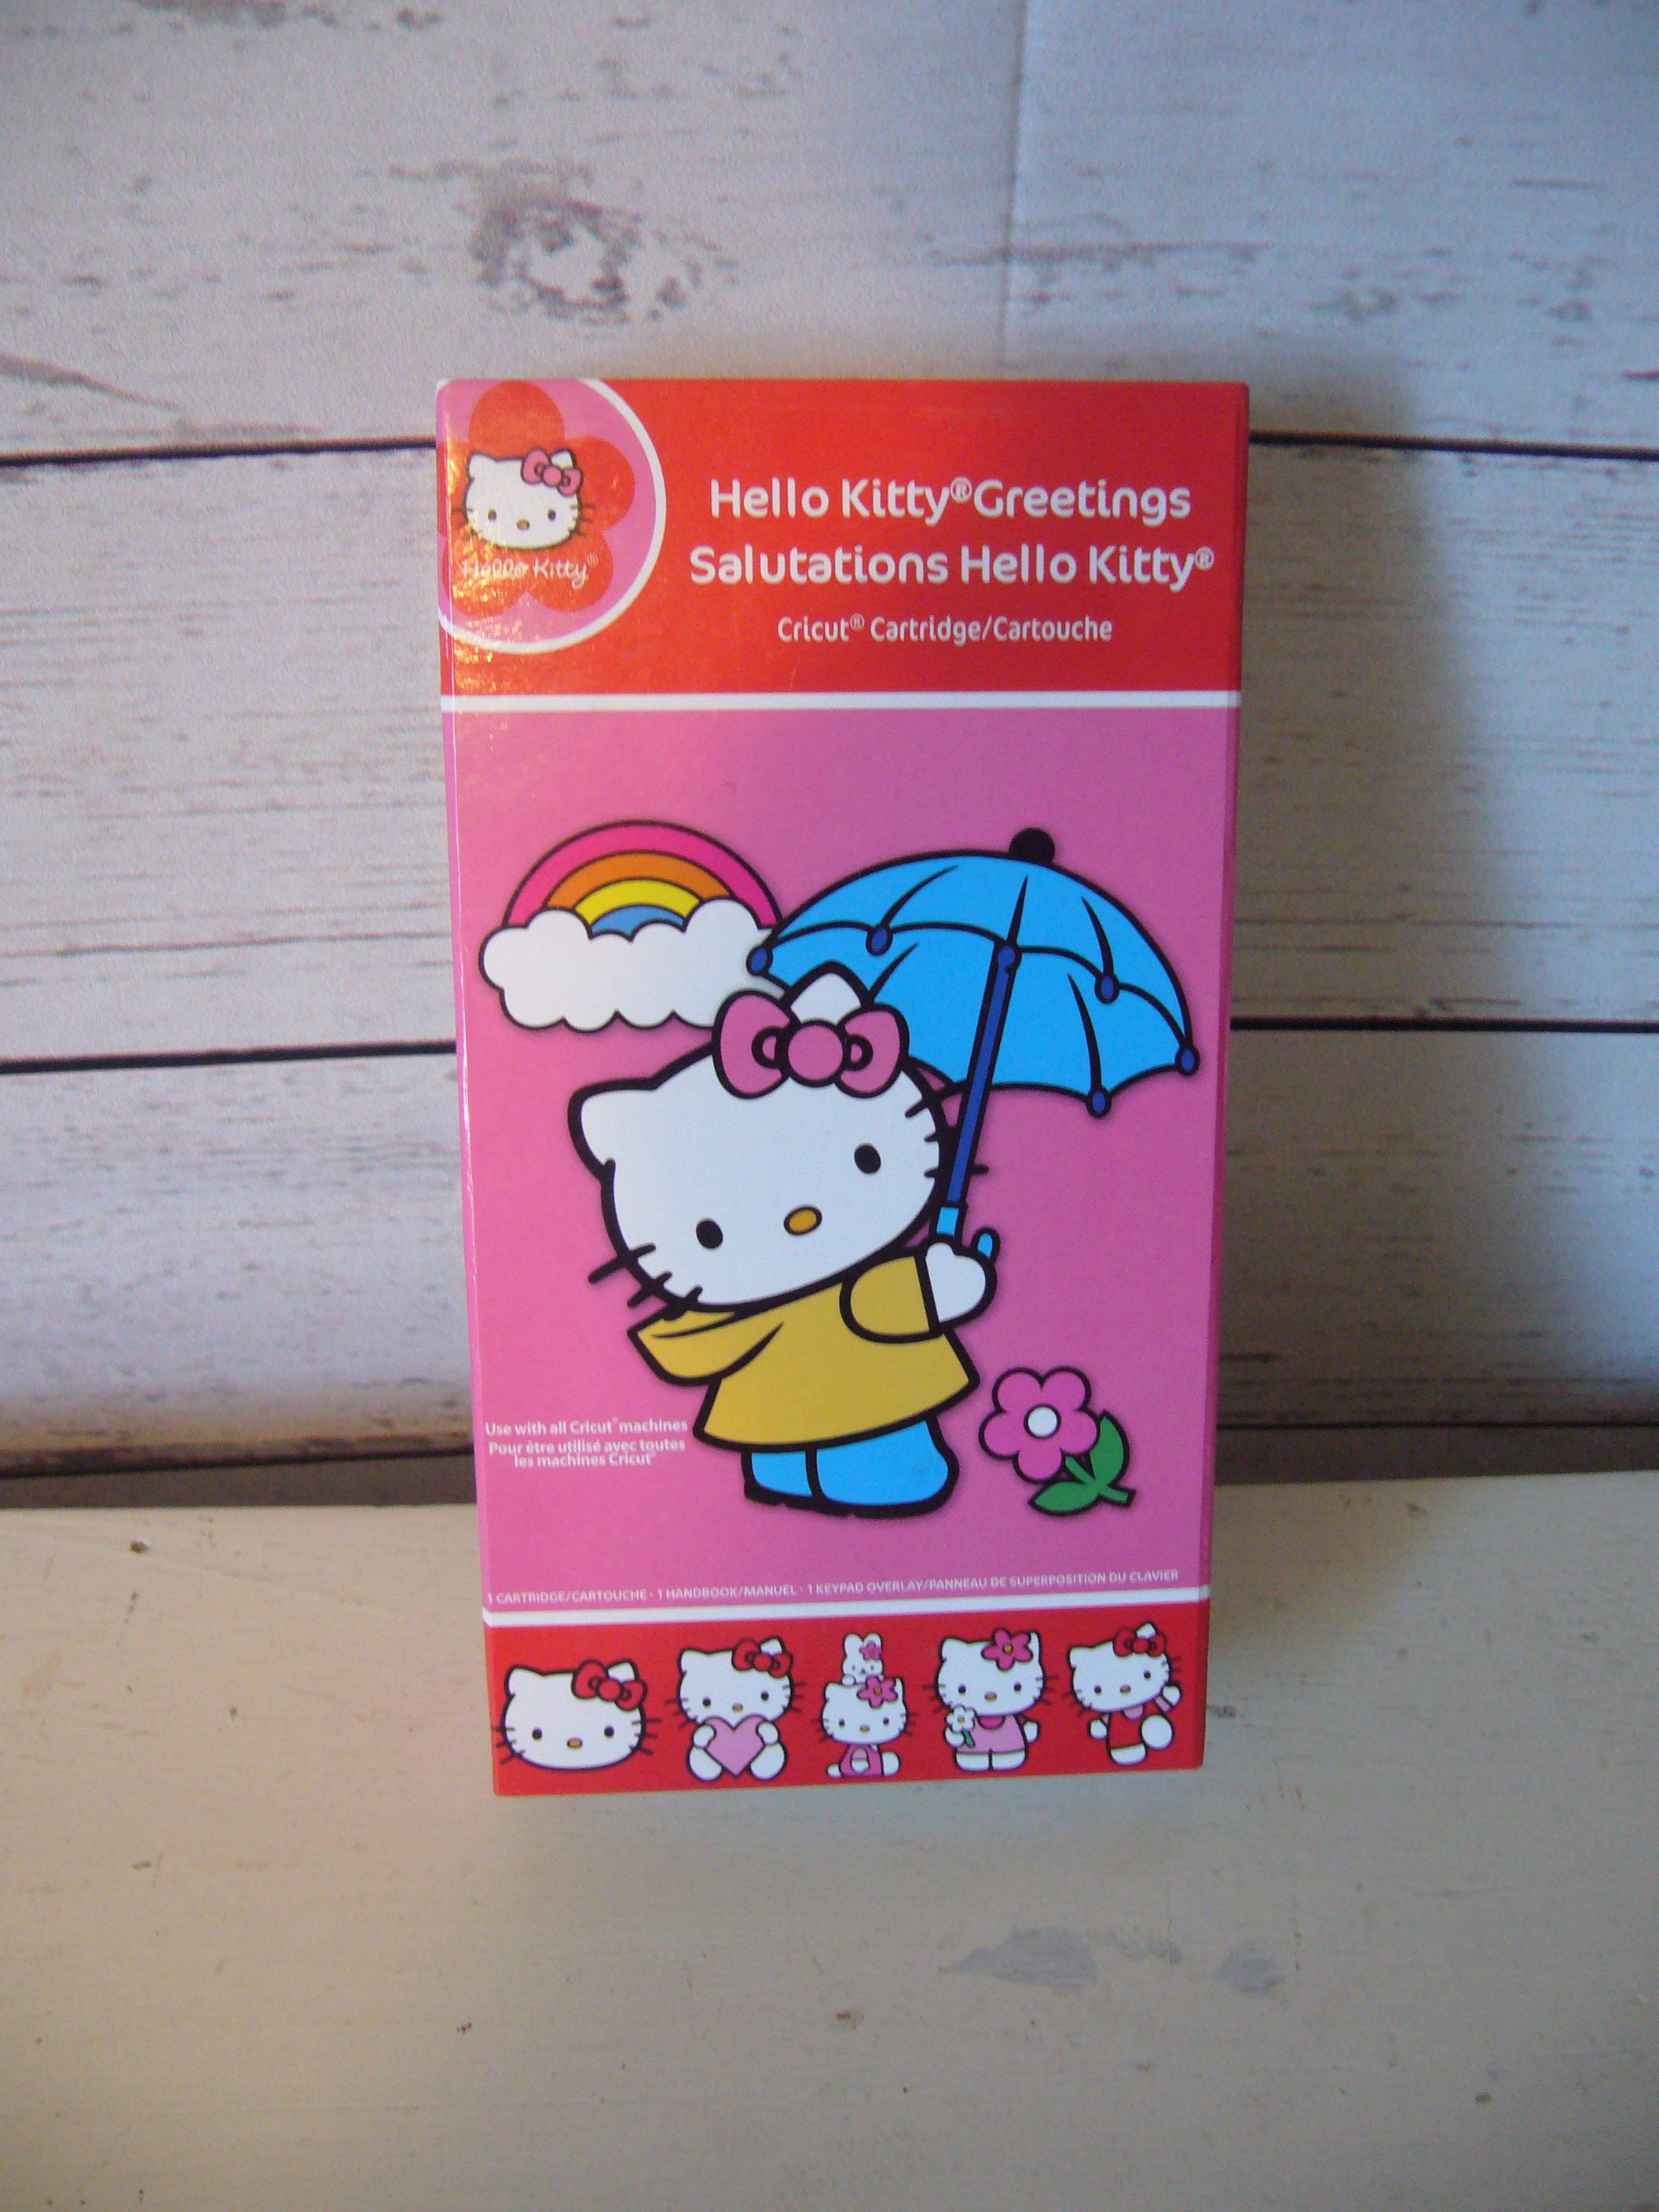 Cricut cartridge hello kitty salutations hello kitty greetings cricut cartridge hello kitty salutations hello kitty greetings provo craft scrapbooking die cutting from clevercottage on etsy studio m4hsunfo